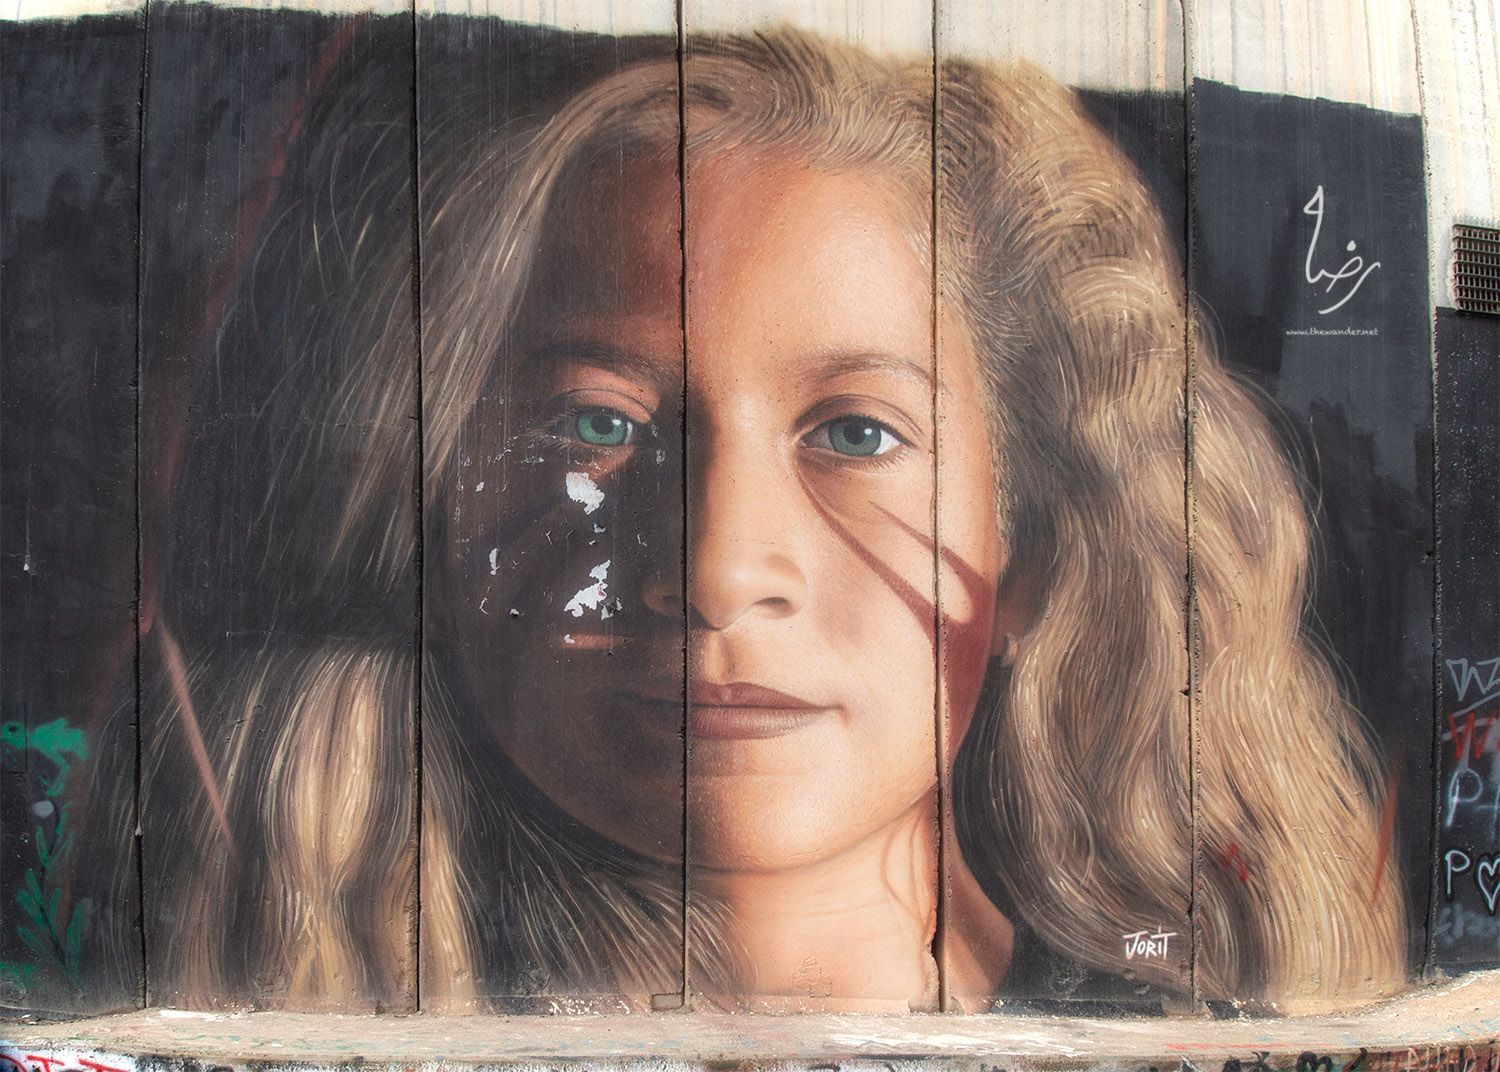 In July 2018, Israeli troops arrested and deported two Italian artists for painting this mural of Ahed Tamimi.